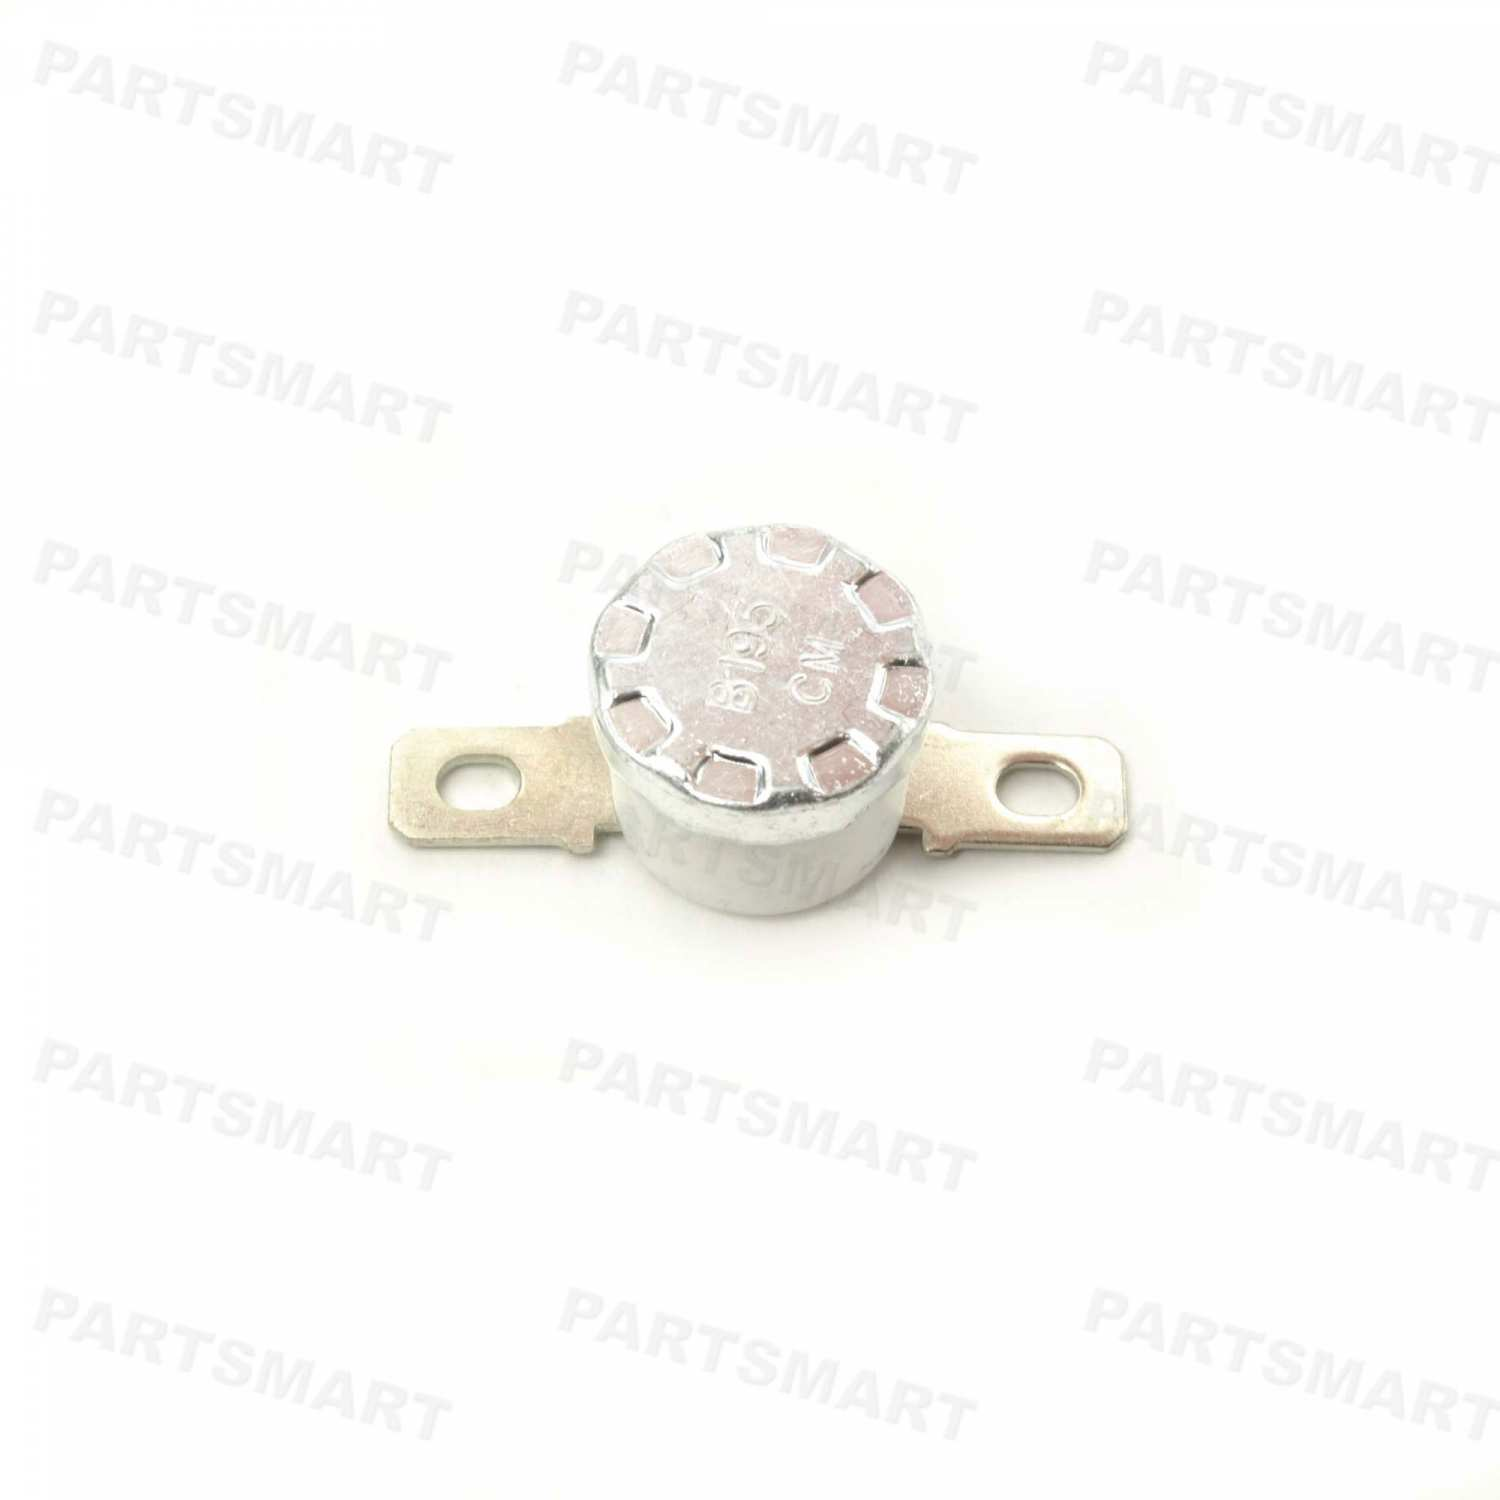 40X0121TW Thermoswitch for Lexmark T64x